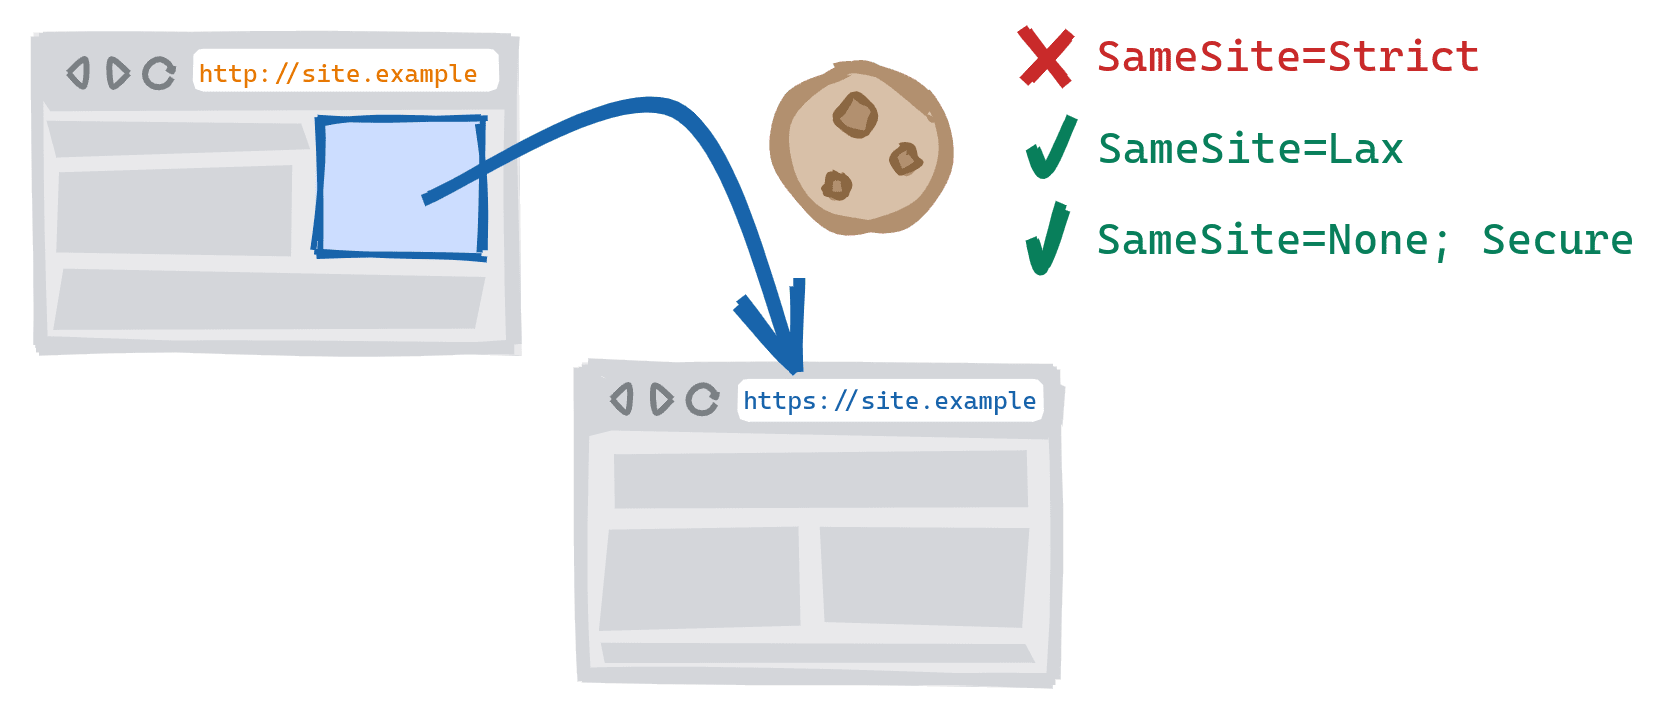 A cross-scheme navigation triggered by following a link on the insecure HTTP version of a site to the secure HTTPS version. SameSite=Strict cookies blocked, SameSite=Lax and SameSite=None; Secure cookies are allowed.